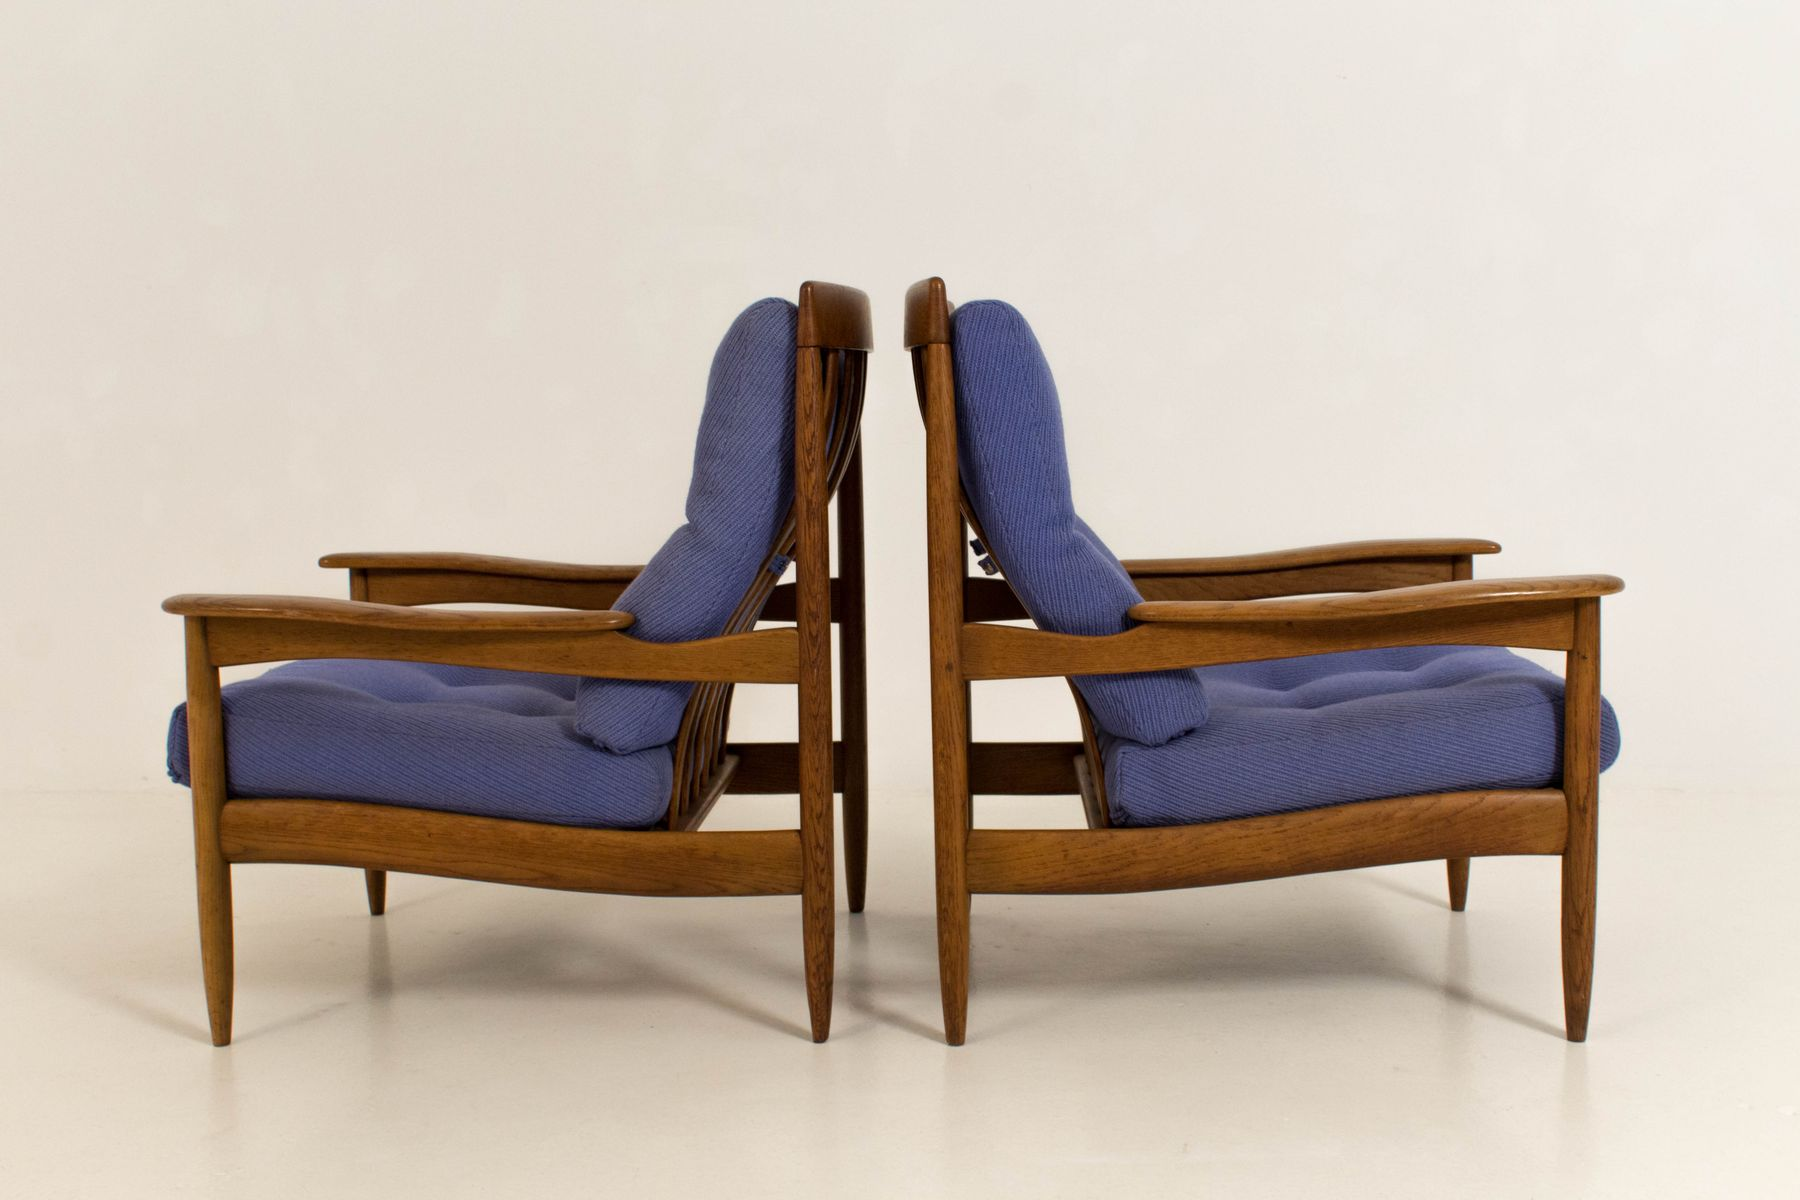 midcentury modern danish lounge chairs s set of  for sale  - midcentury modern danish lounge chairs s set of   price per set